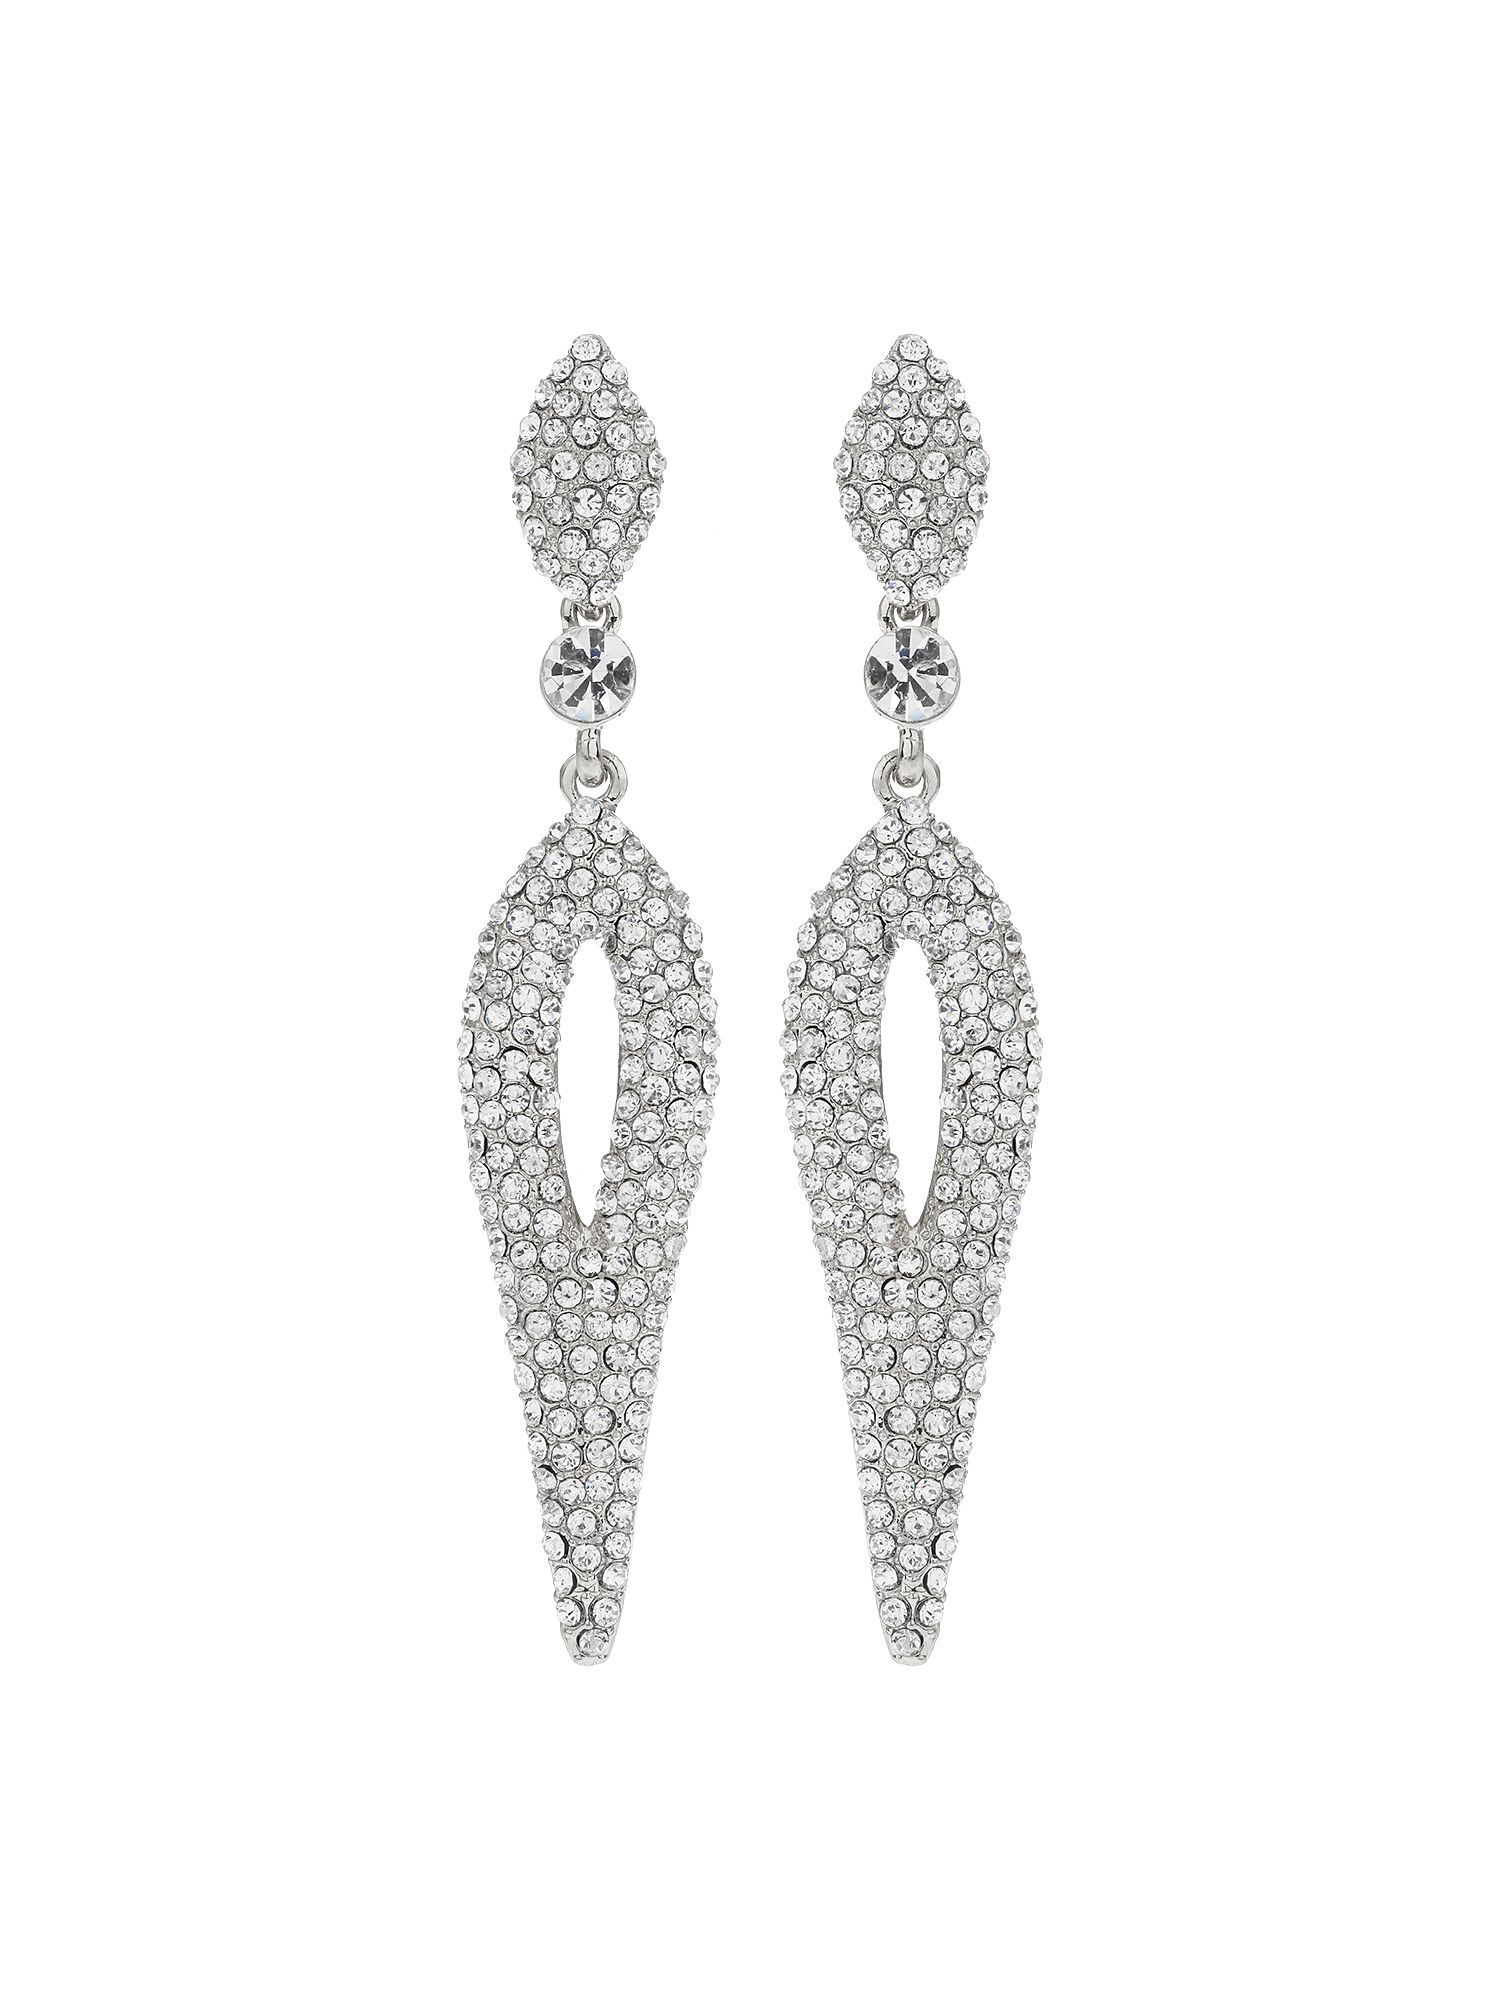 mikey eclipse design studded crystal earring